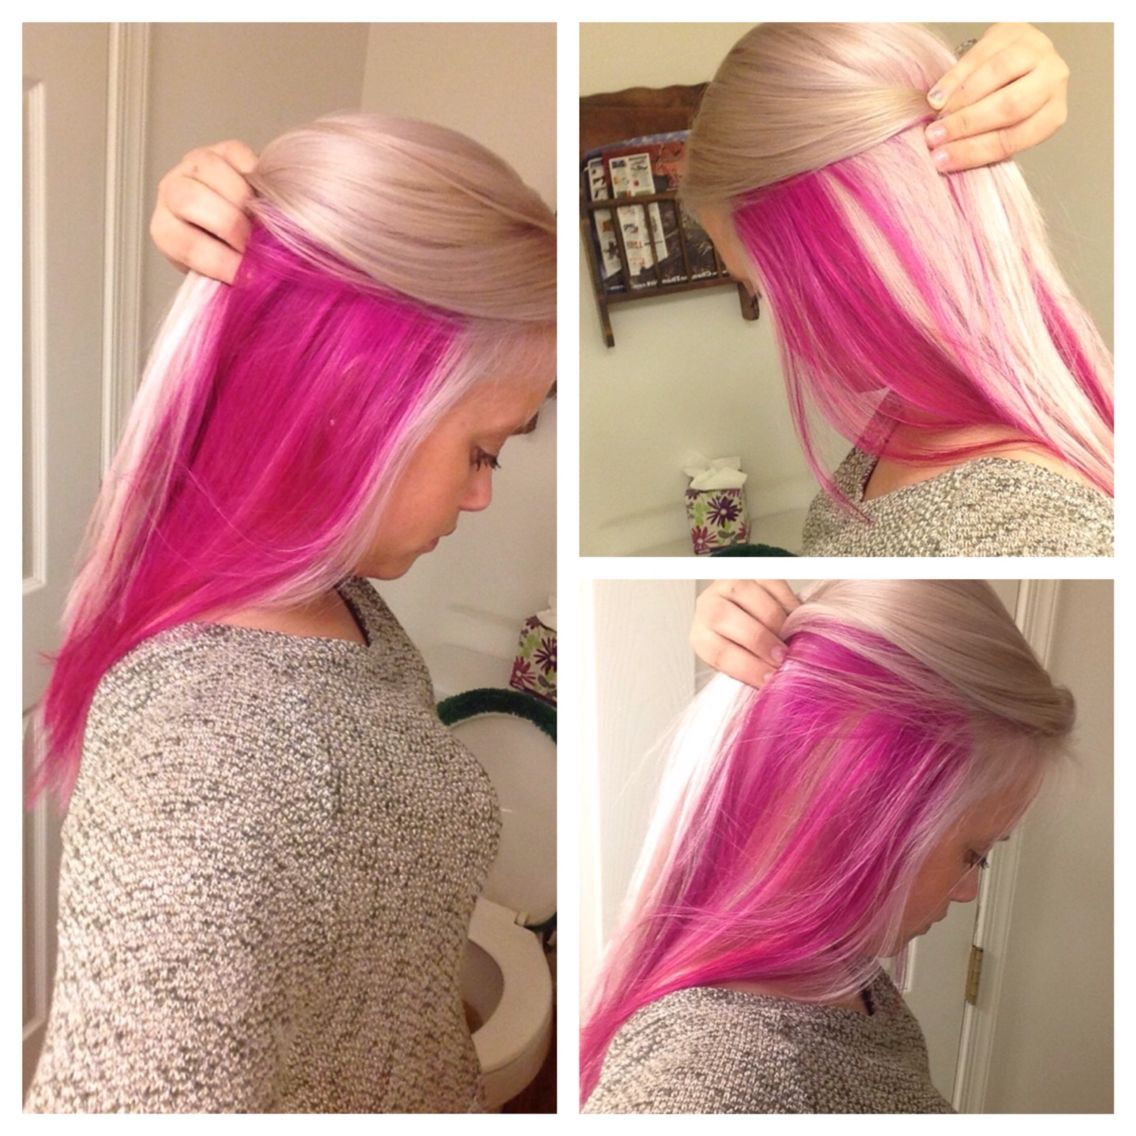 Pravana wild orchid white and pink hair  INSTAGRAM @lillllmeg @ashleyhair_